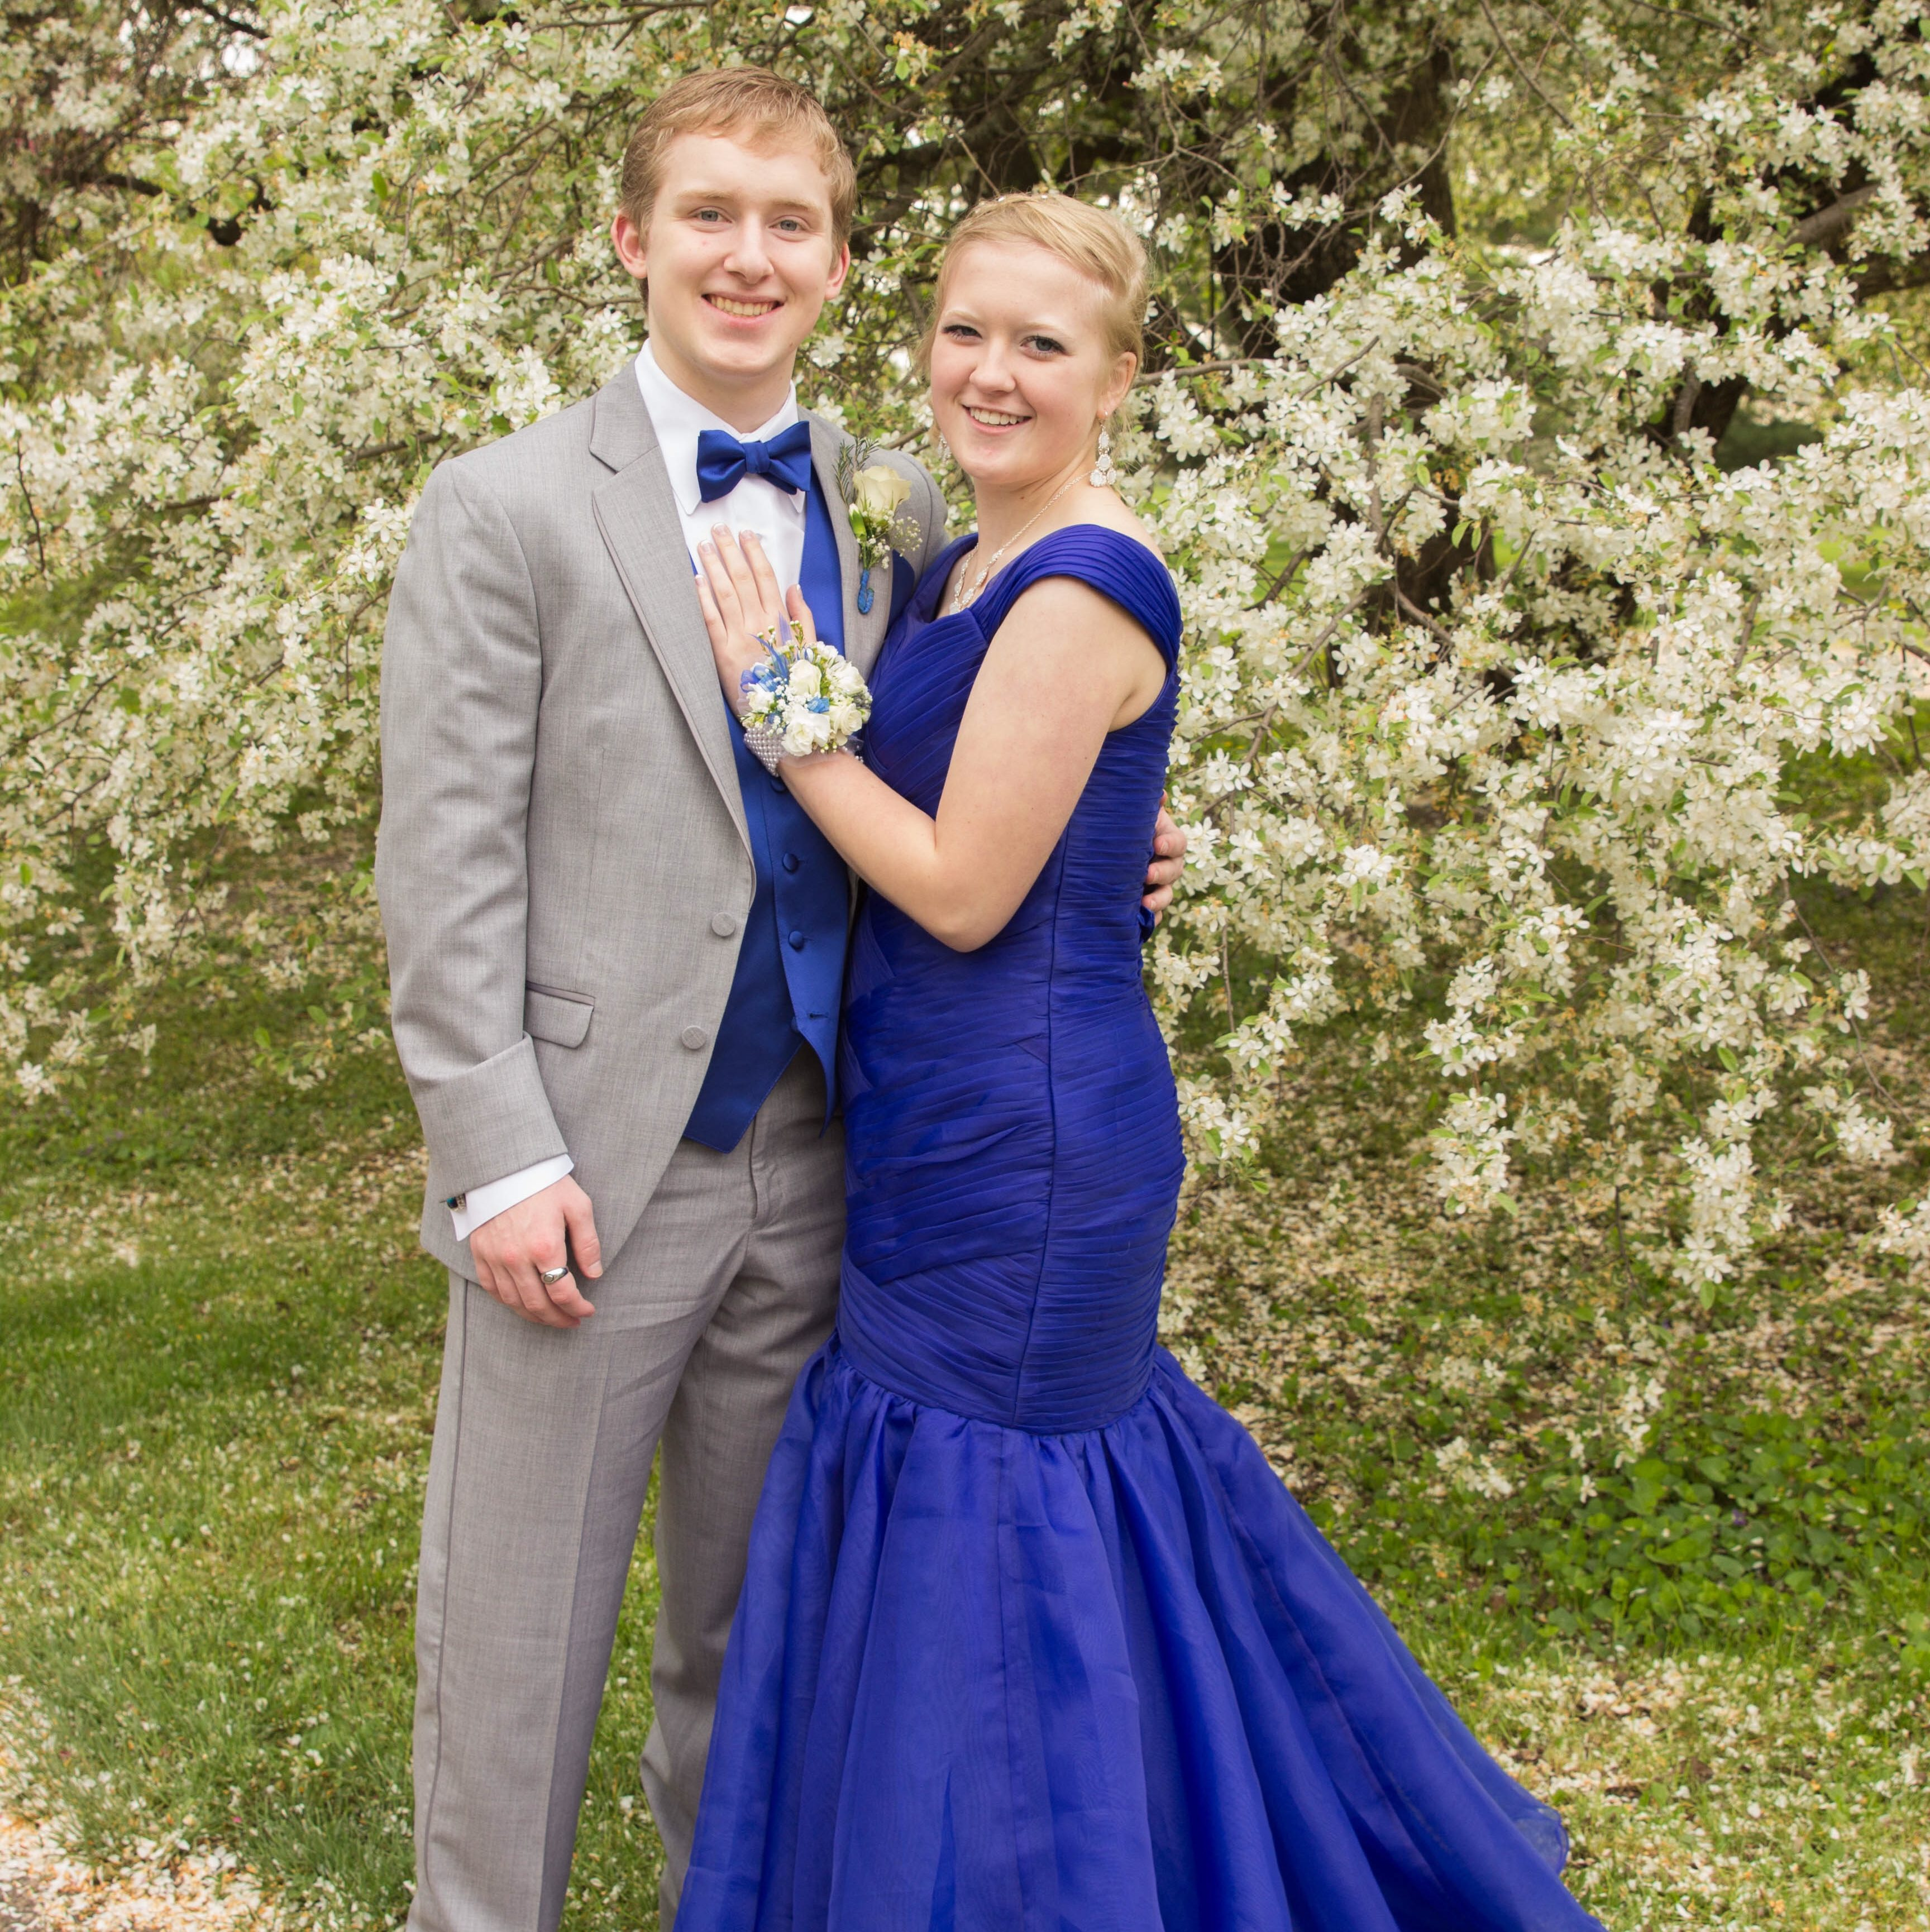 prom dating Most kids take their significant others or a friend to the prom but sometimes circumstances, luck, or imagination intervene to pair a promgoer with someone—or something—very unexpected for that special occasion in 2012, high school junior regina reynolds declared that if no one asked her to.